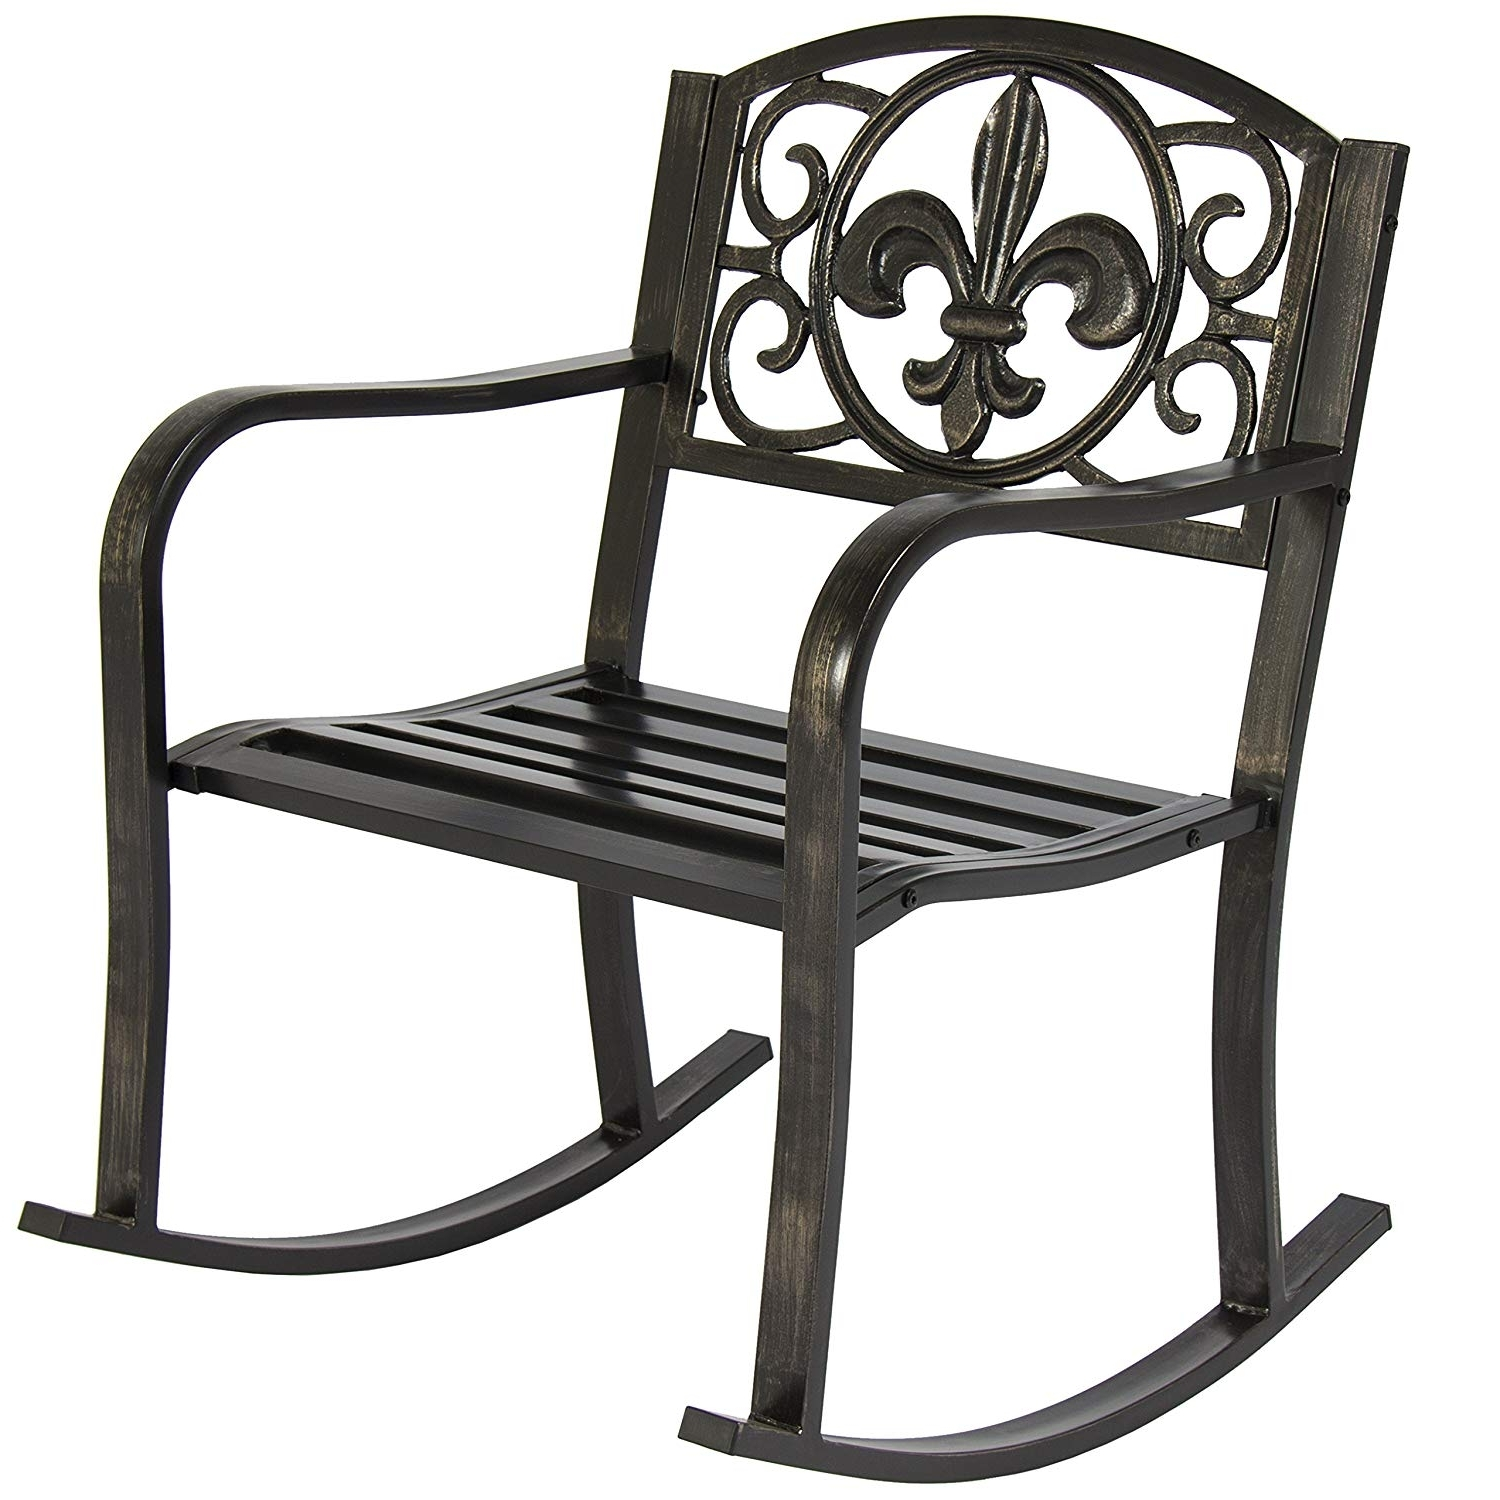 Vintage Metal Rocking Patio Chairs In Famous Amazon : Best Choice Products Metal Rocking Chair Seat For Patio (View 13 of 15)